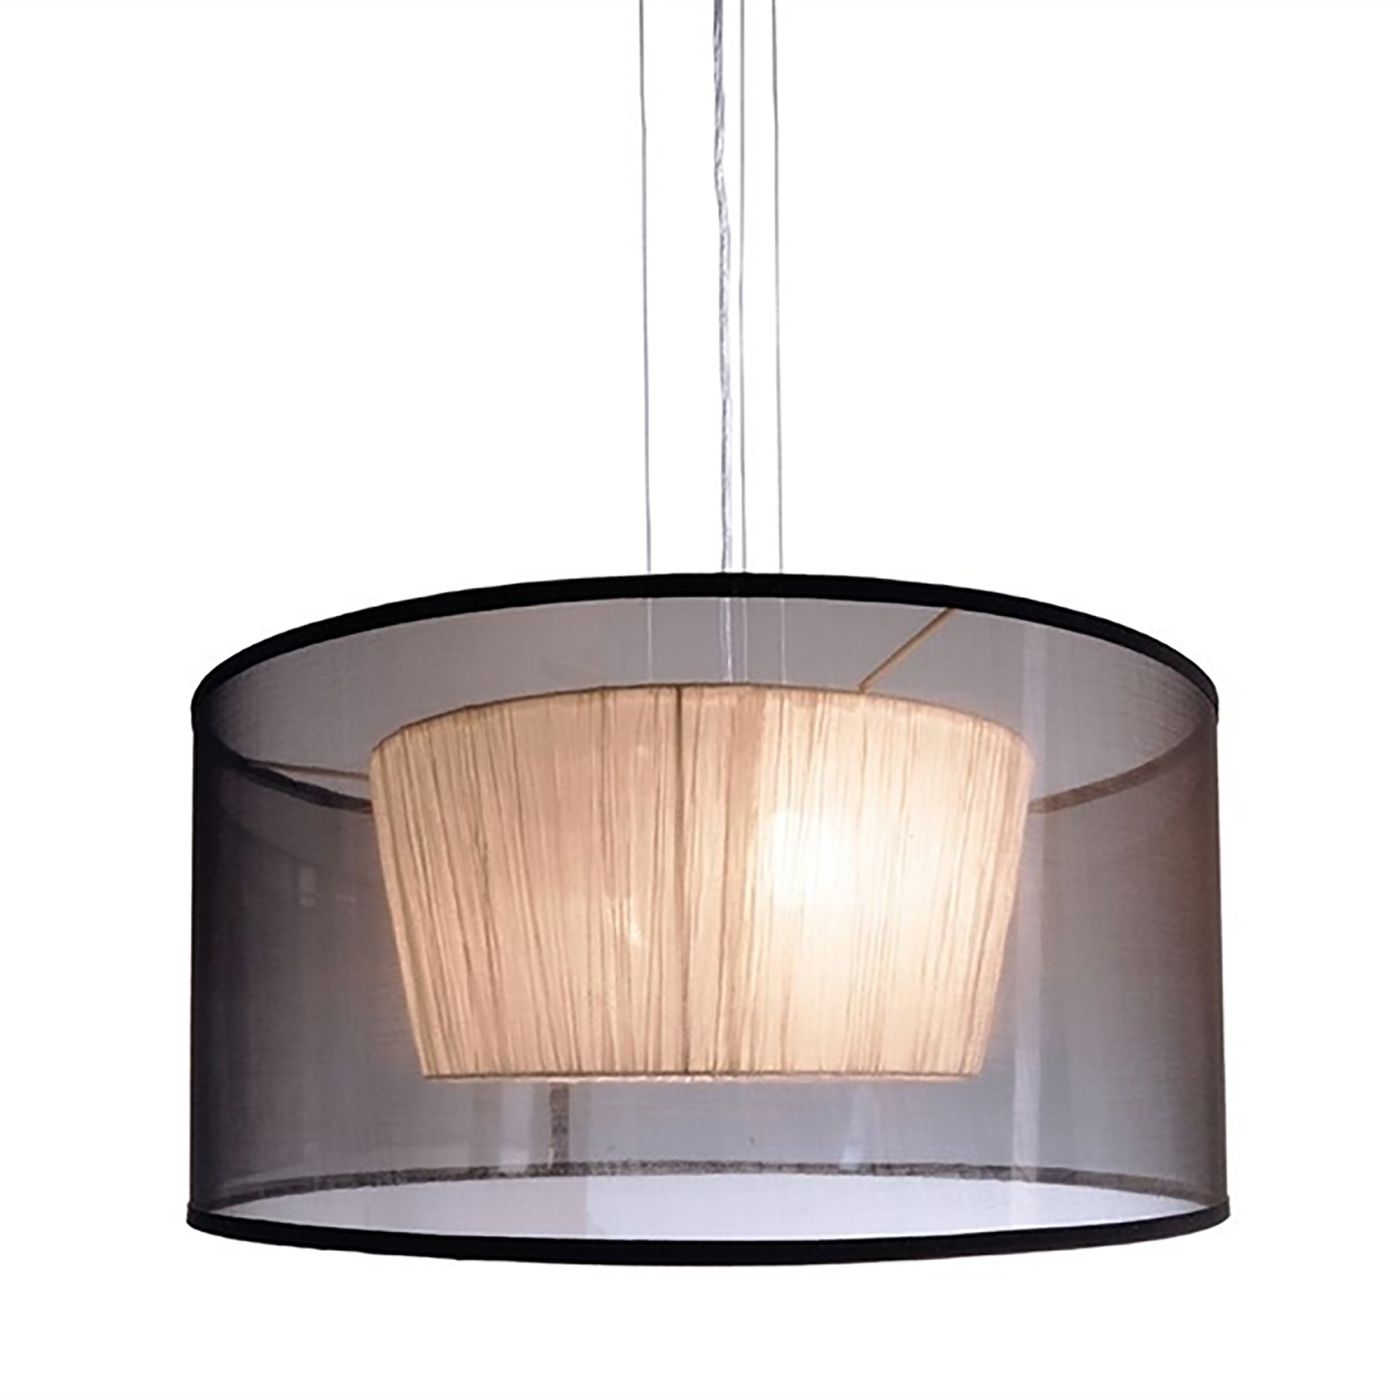 Moderne lustre suspension lampe suspension led de tissu de 4 attaques E27 220V